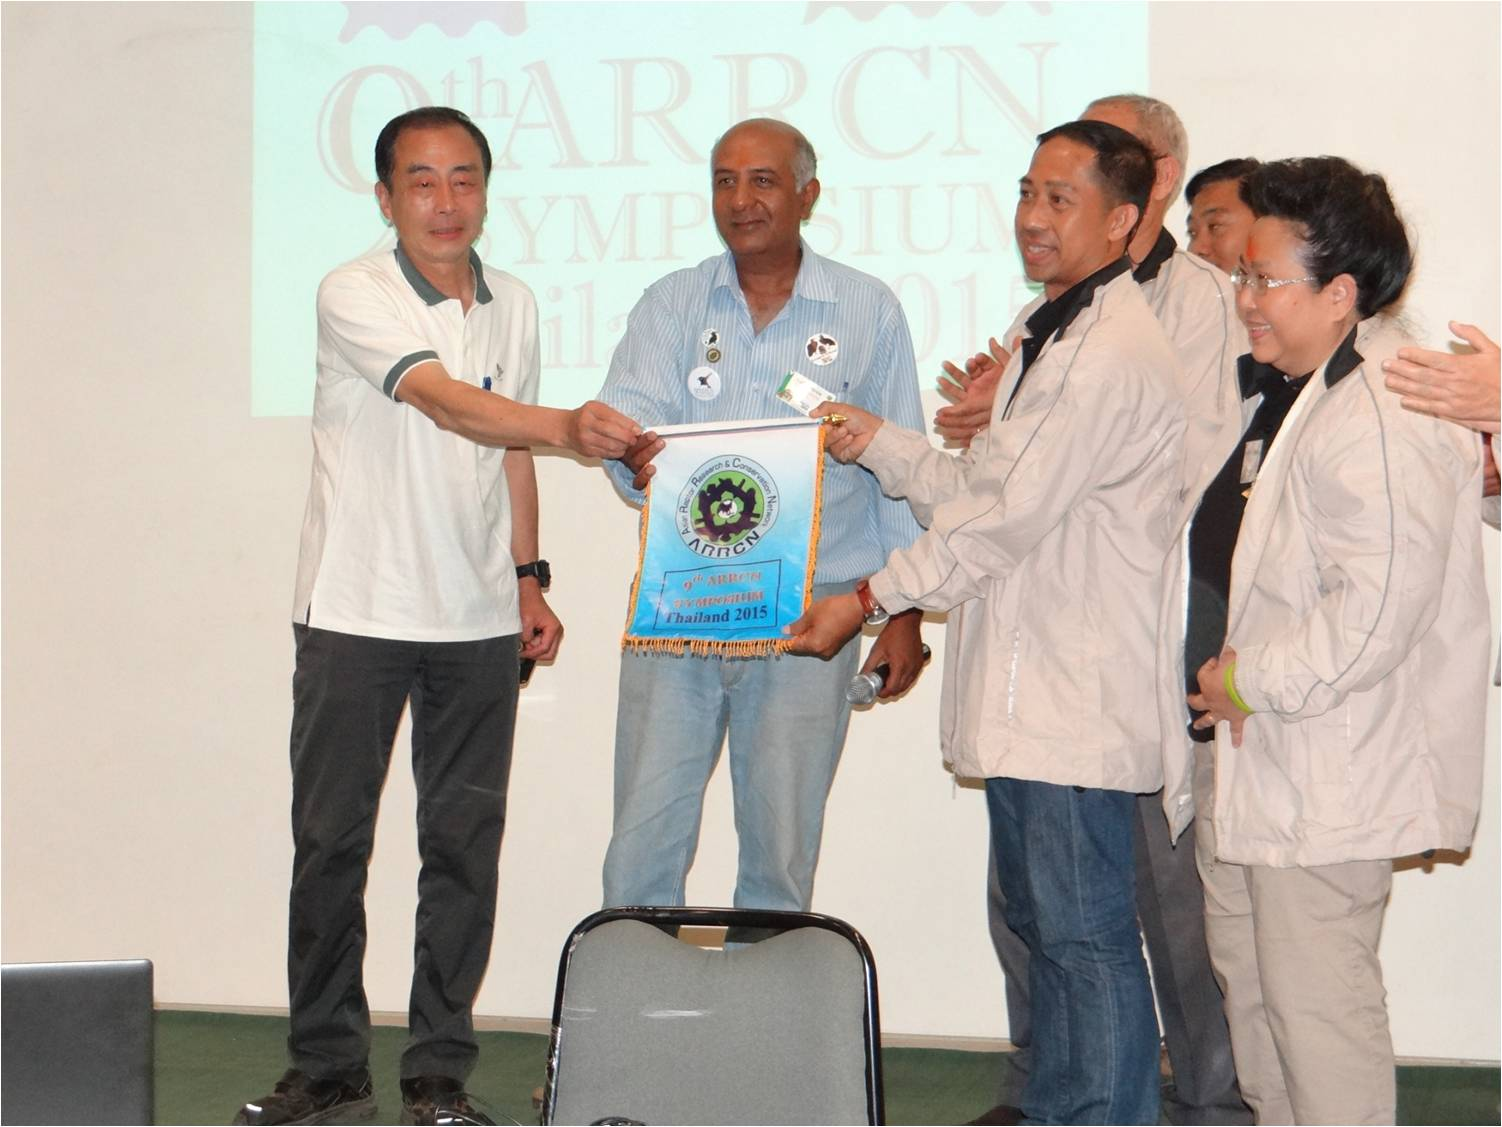 Satish Pande hands the ARRCN Symposium Flag to the team from Thailand. Photo by E. Nikolenko.